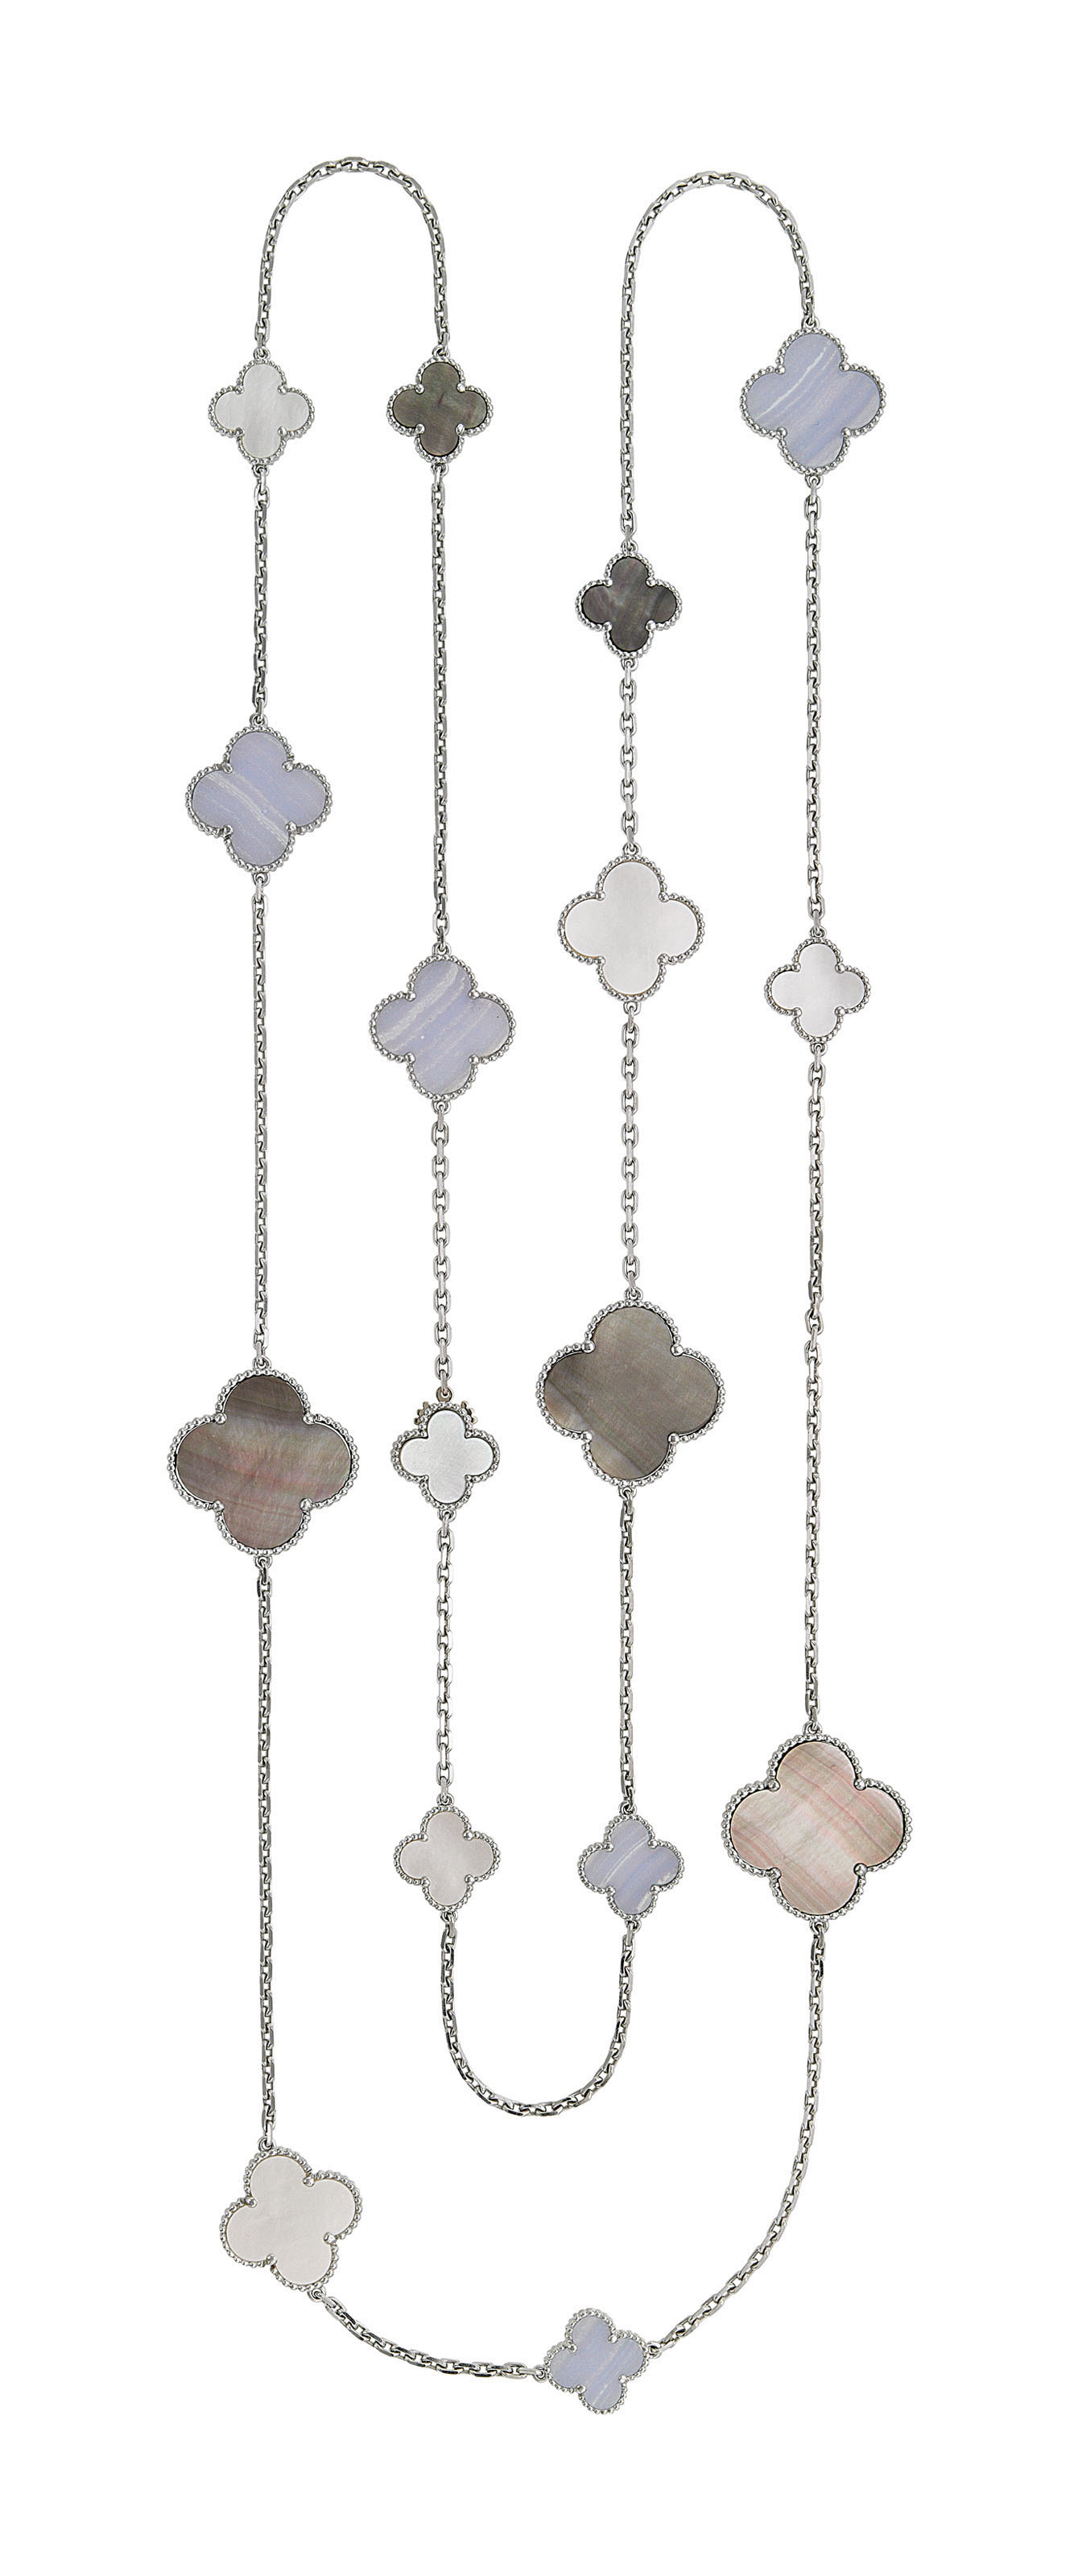 MOTHER-OF-PEARL AND AGATE 'MAGIC ALHAMBRA' LONGCHAIN